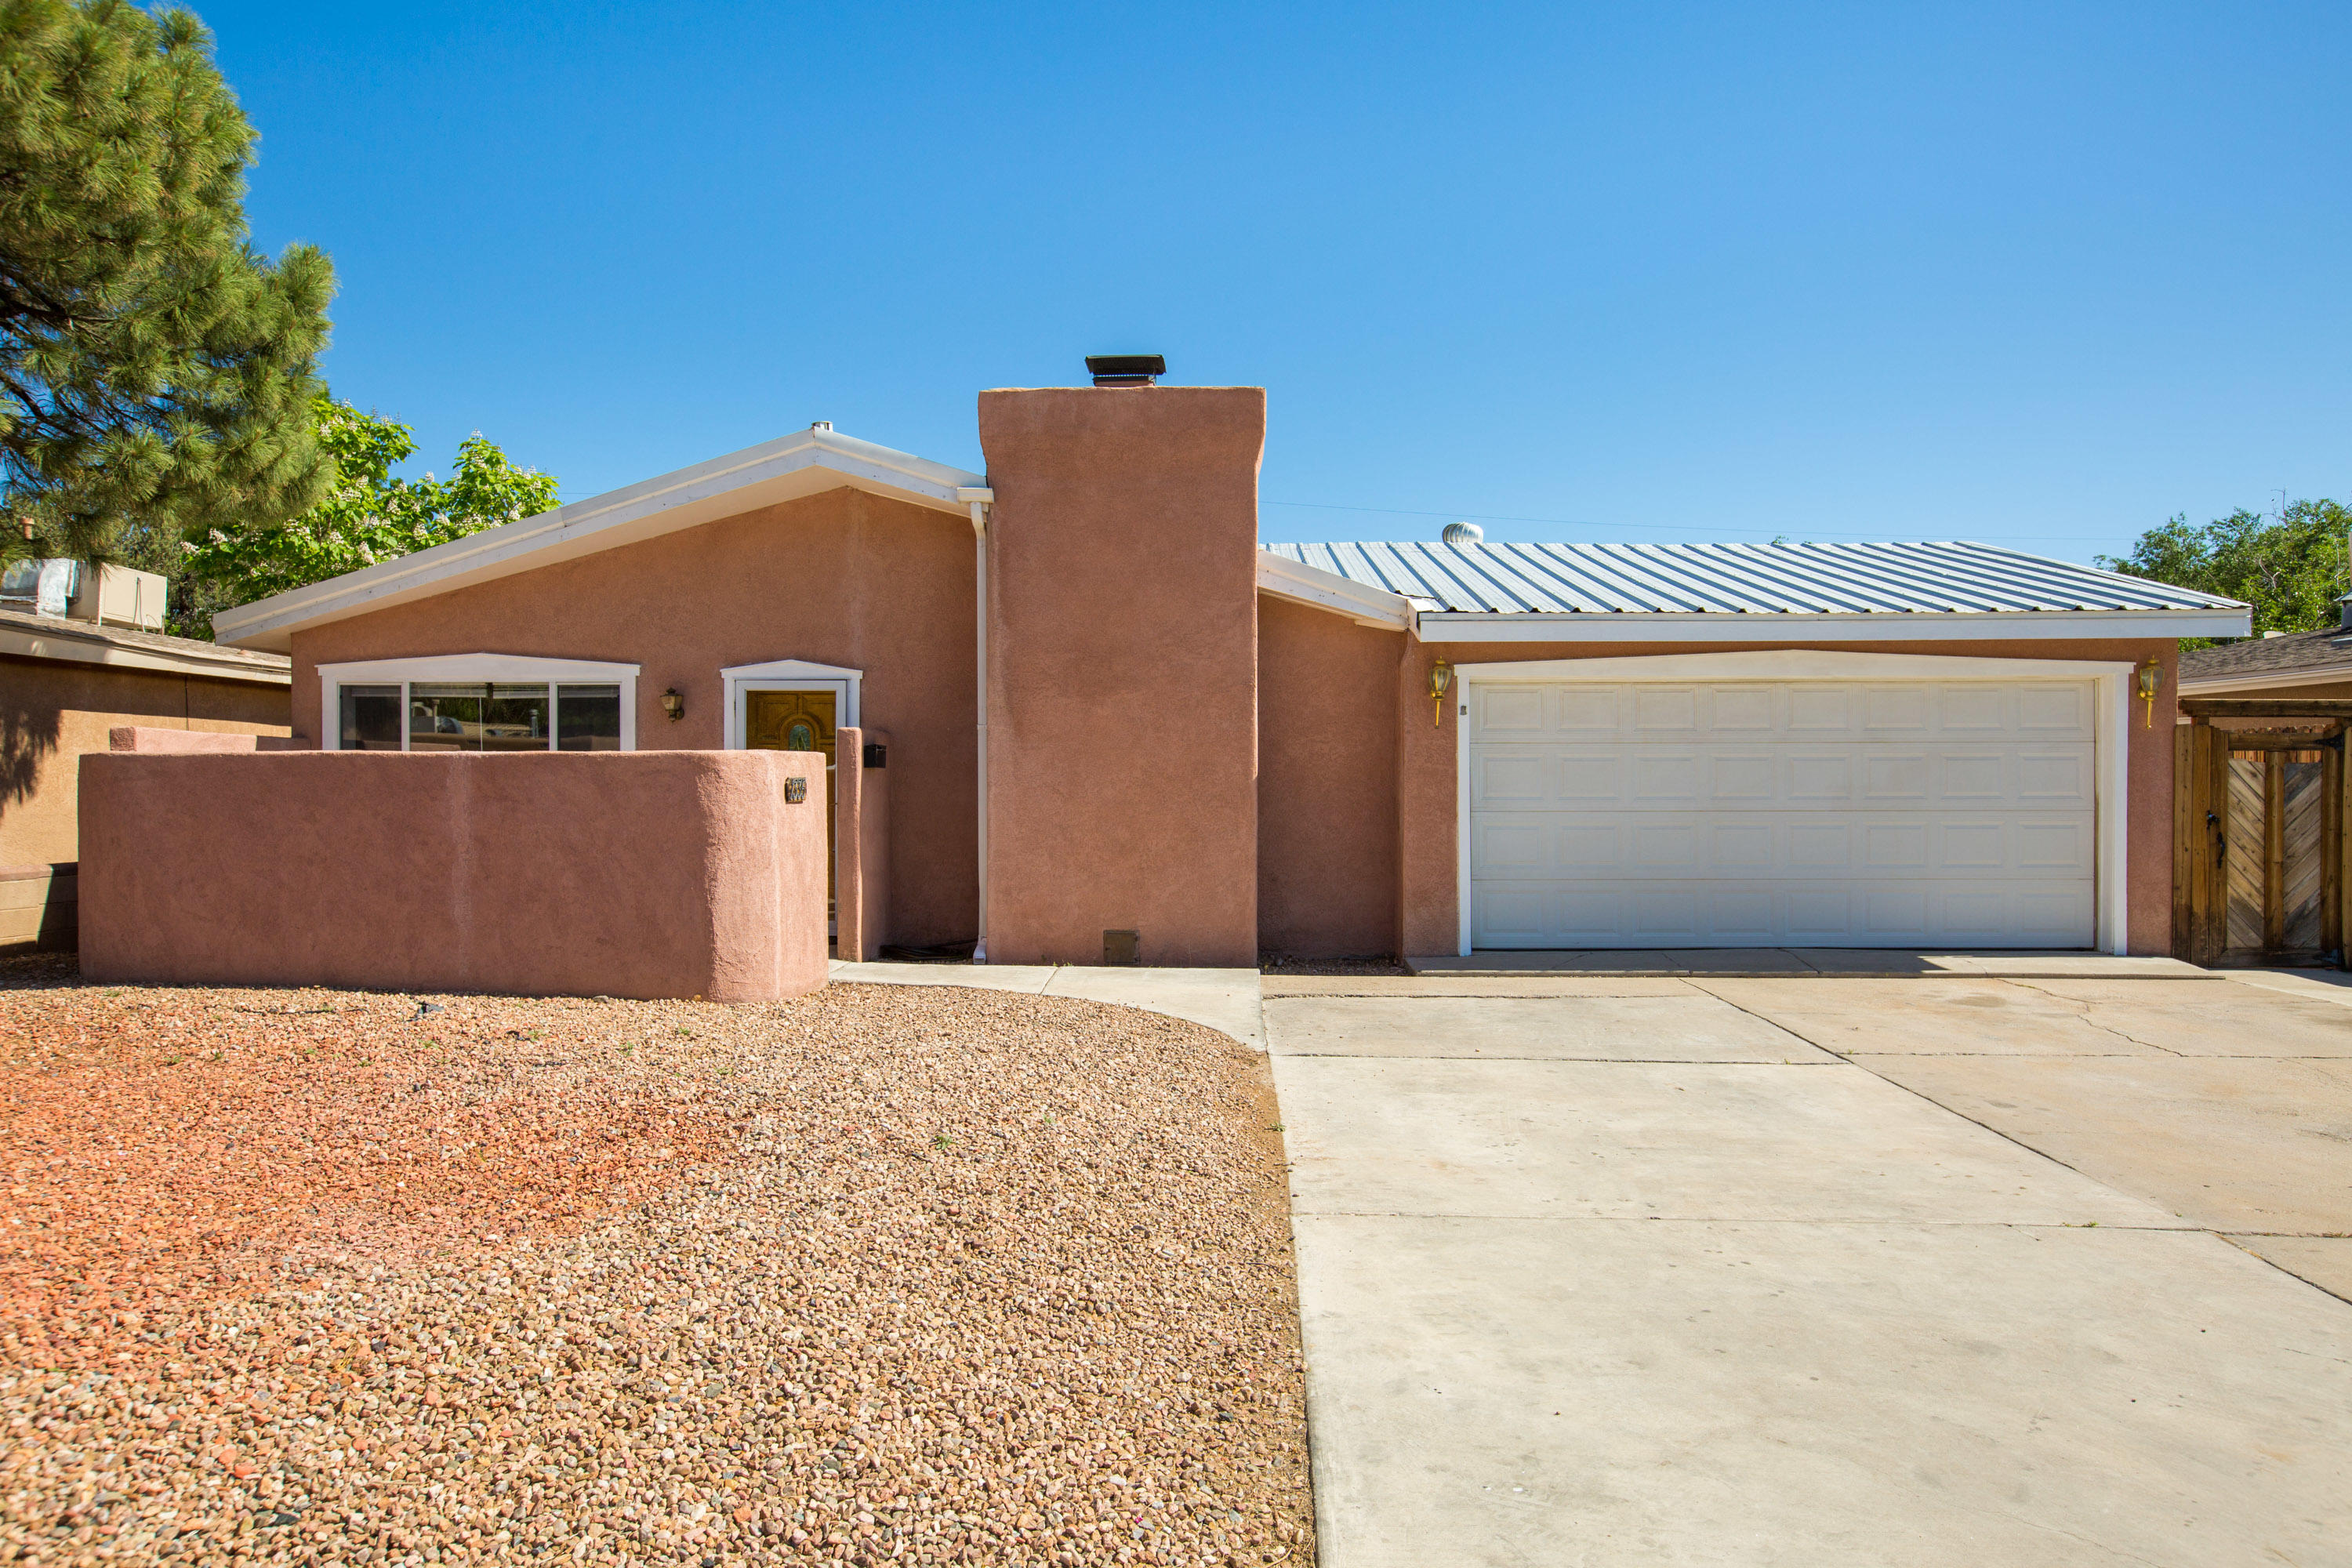 This North Valley home has a two car garage, three bedrooms, two bathrooms and bonus room. The front courtyard  is private and spacious. The fireplace in the eat in kitchen provides wonderful ambiance and solar tubes make the room bright and inviting. Pre-inspections completed  with repairs under way. New MasterCool Evaporative unit installed May 2021. Schedule a showing today, don't miss out on this great property!